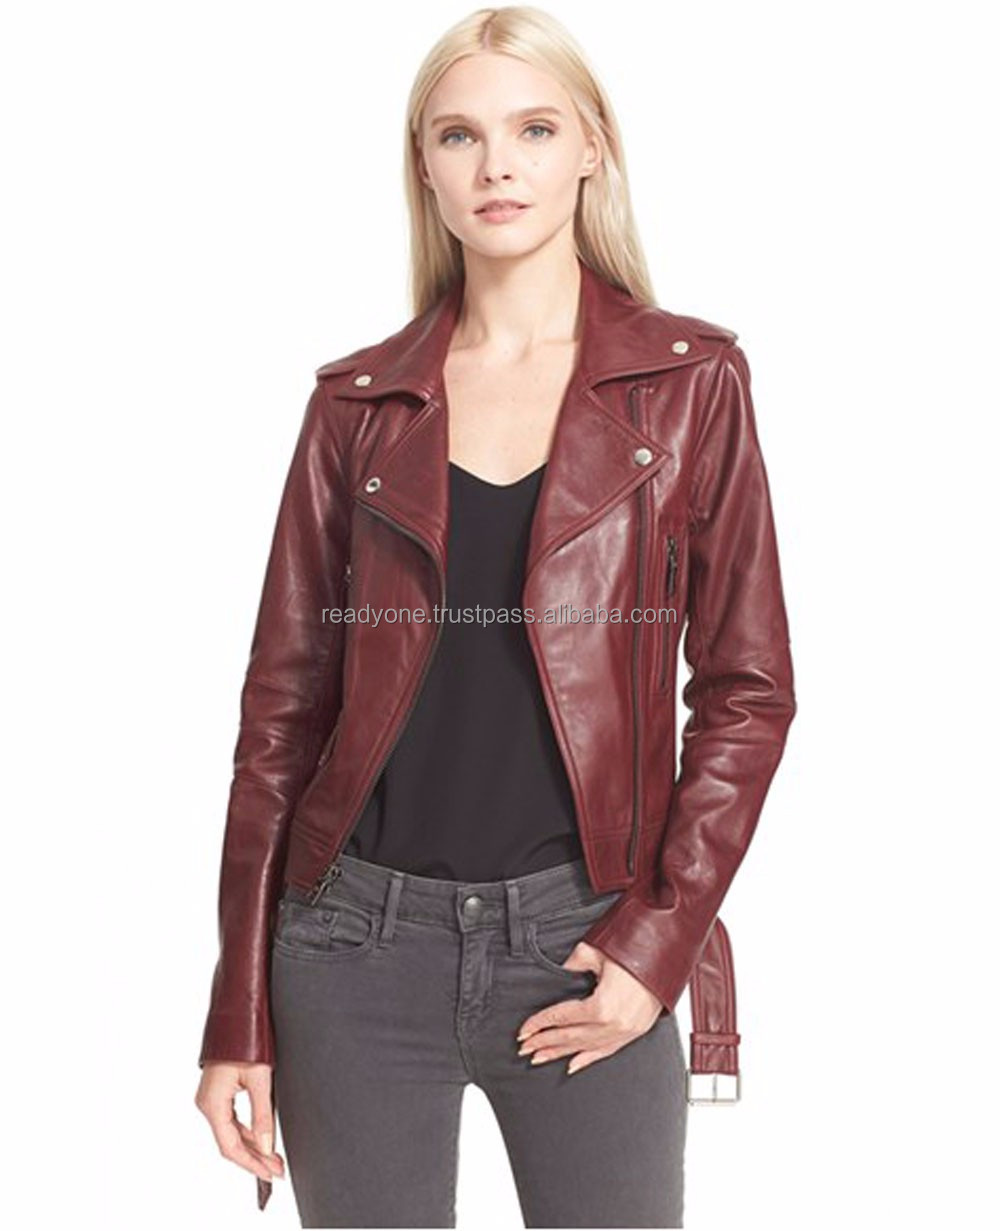 Biker Leather Jacket Valentine Heart Shaped Womens Leather Motorcycle